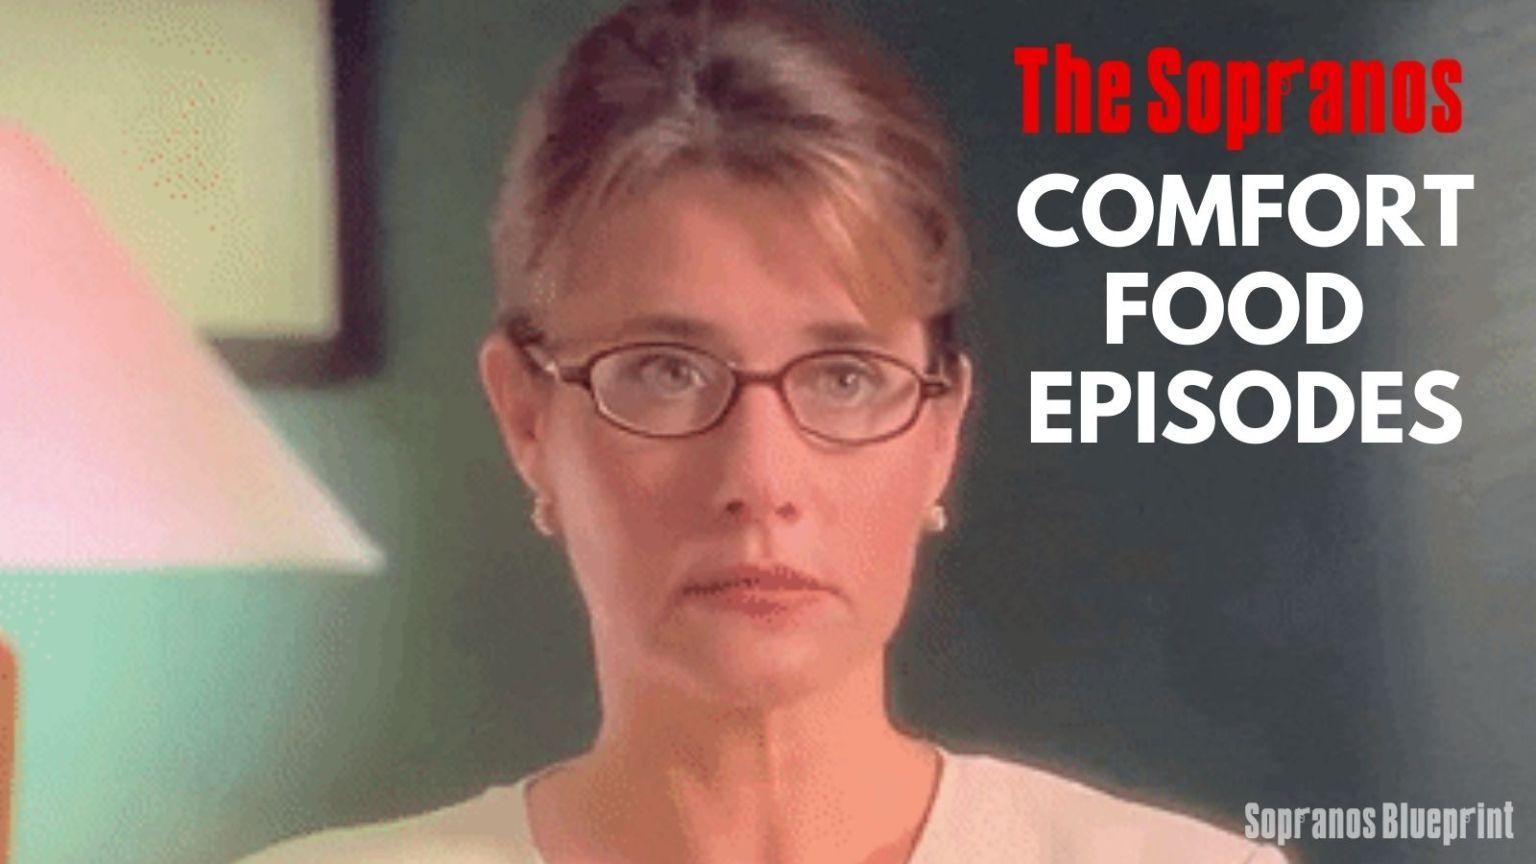 My Ultimate Comfort Food Episodes On The Sopranos